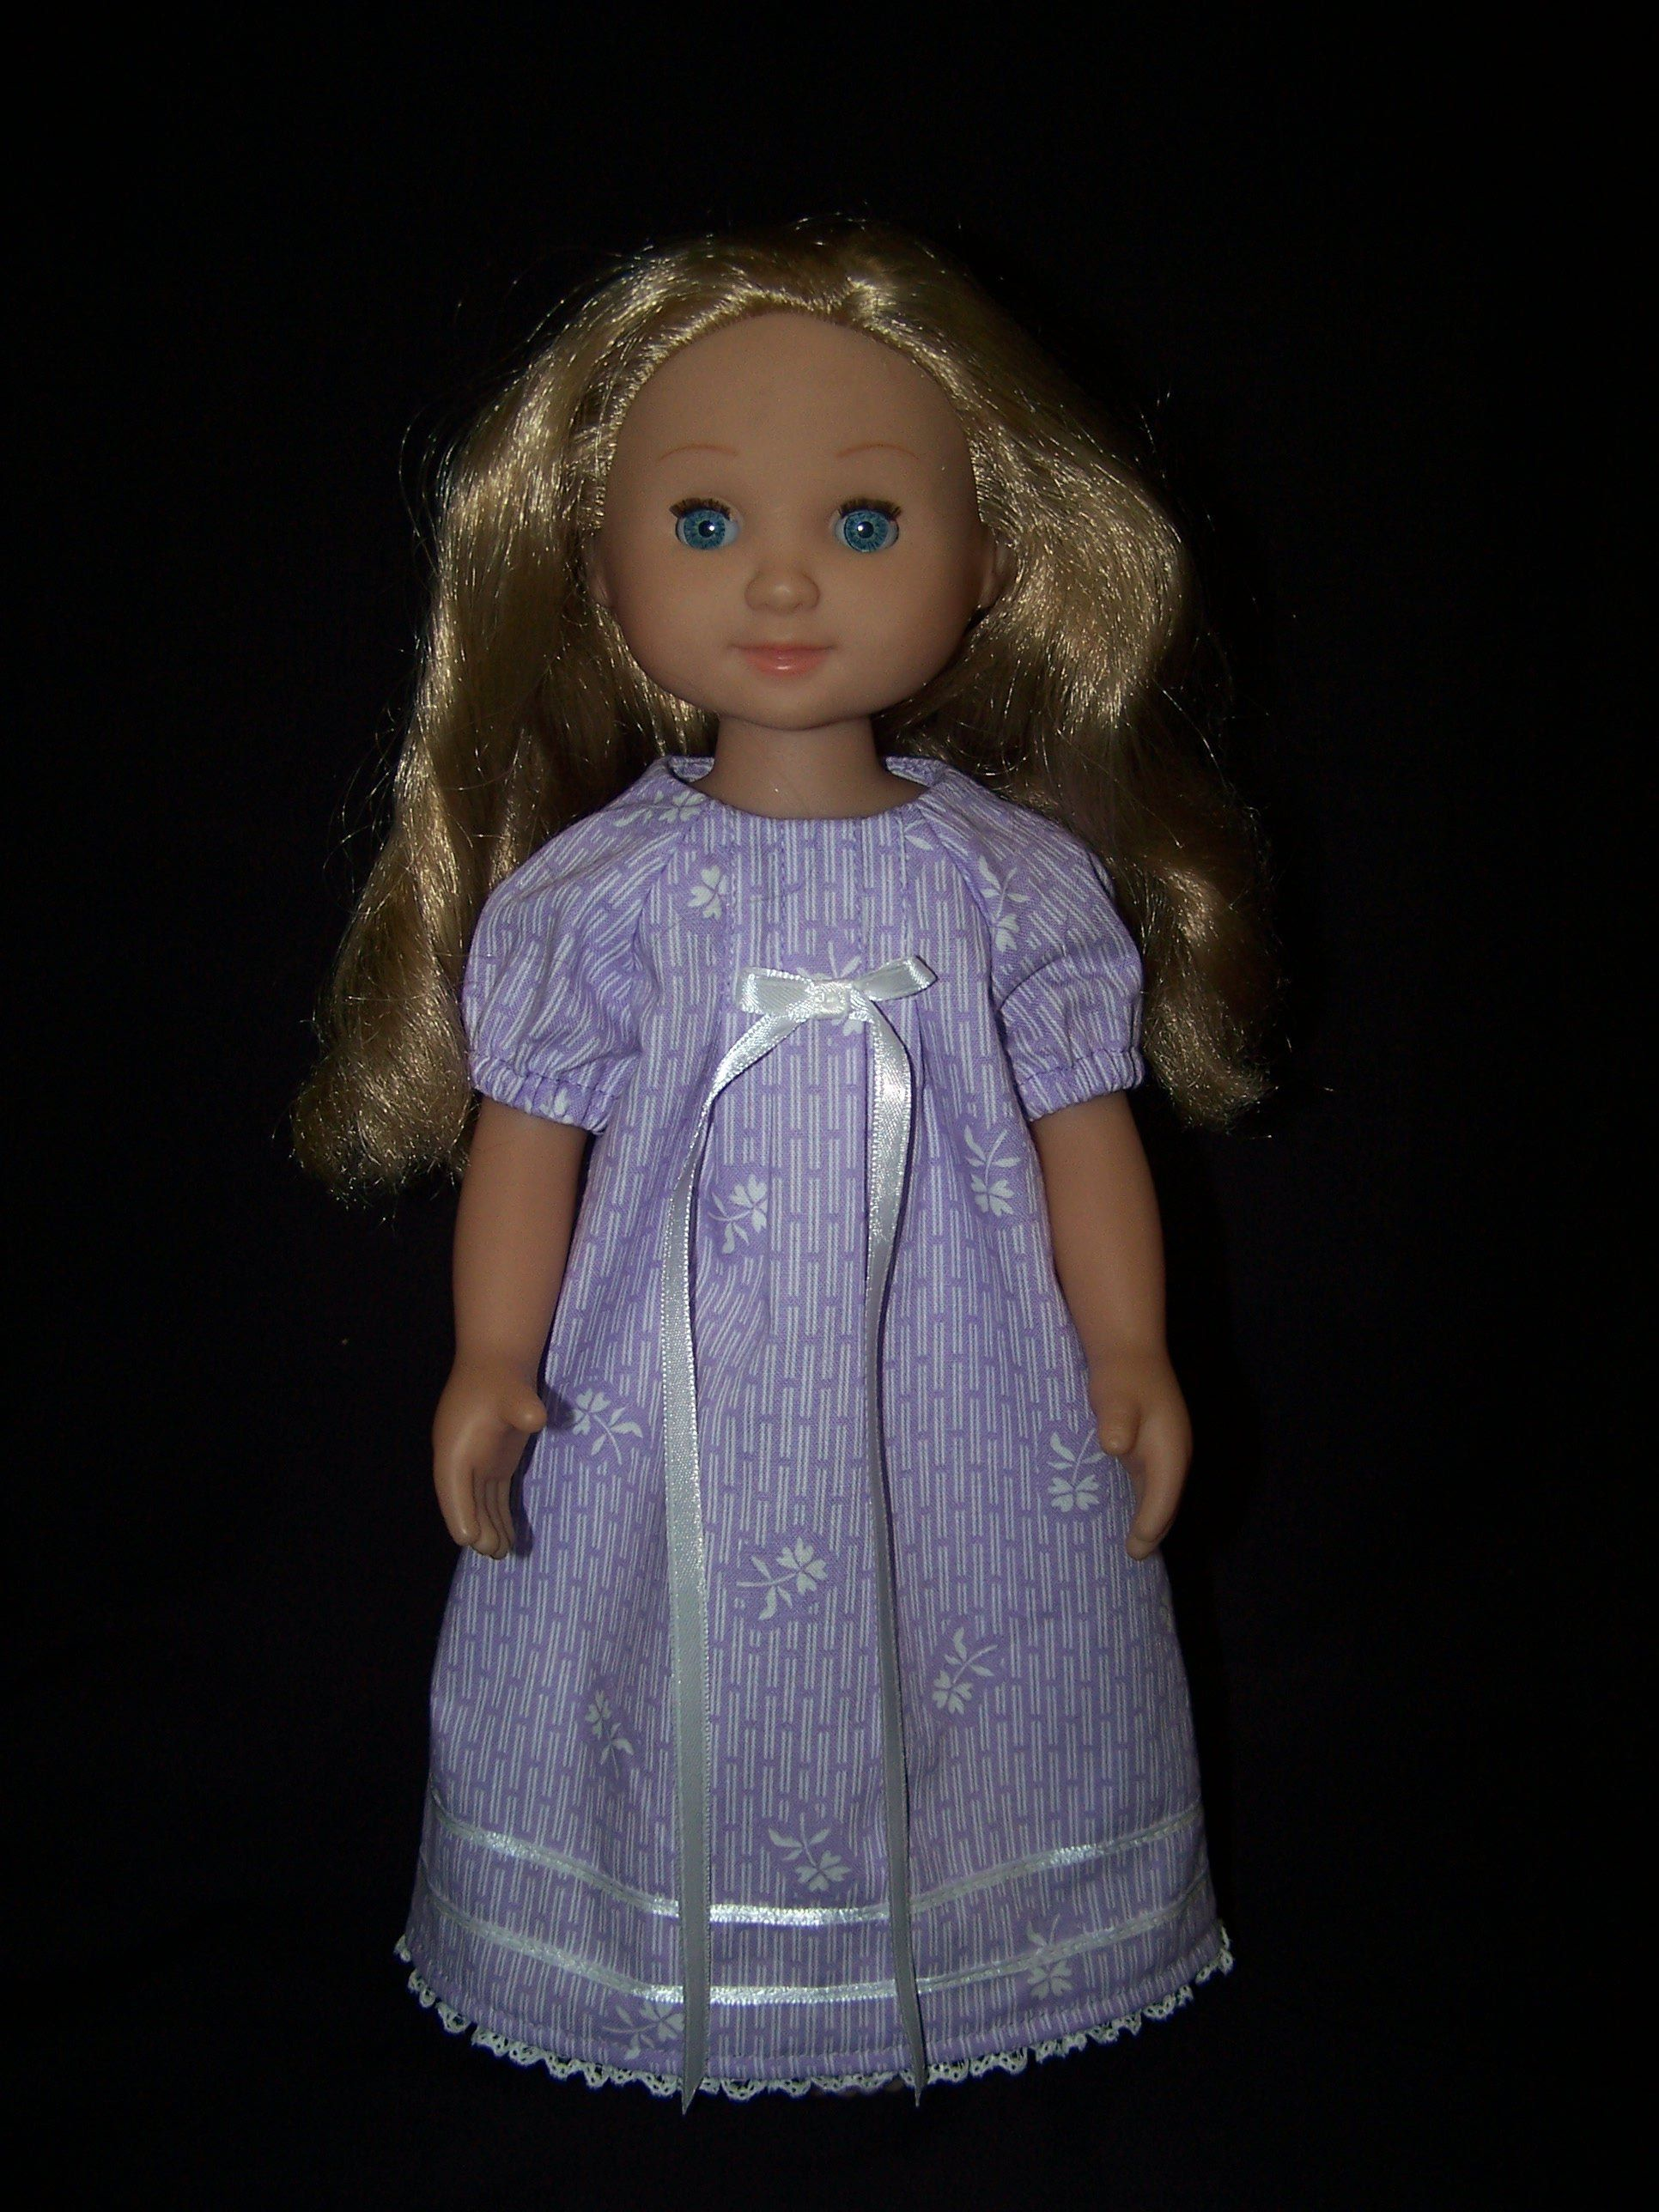 Nightgown For 14 5 Inch Dolls Like Wellie Wisher Mine To